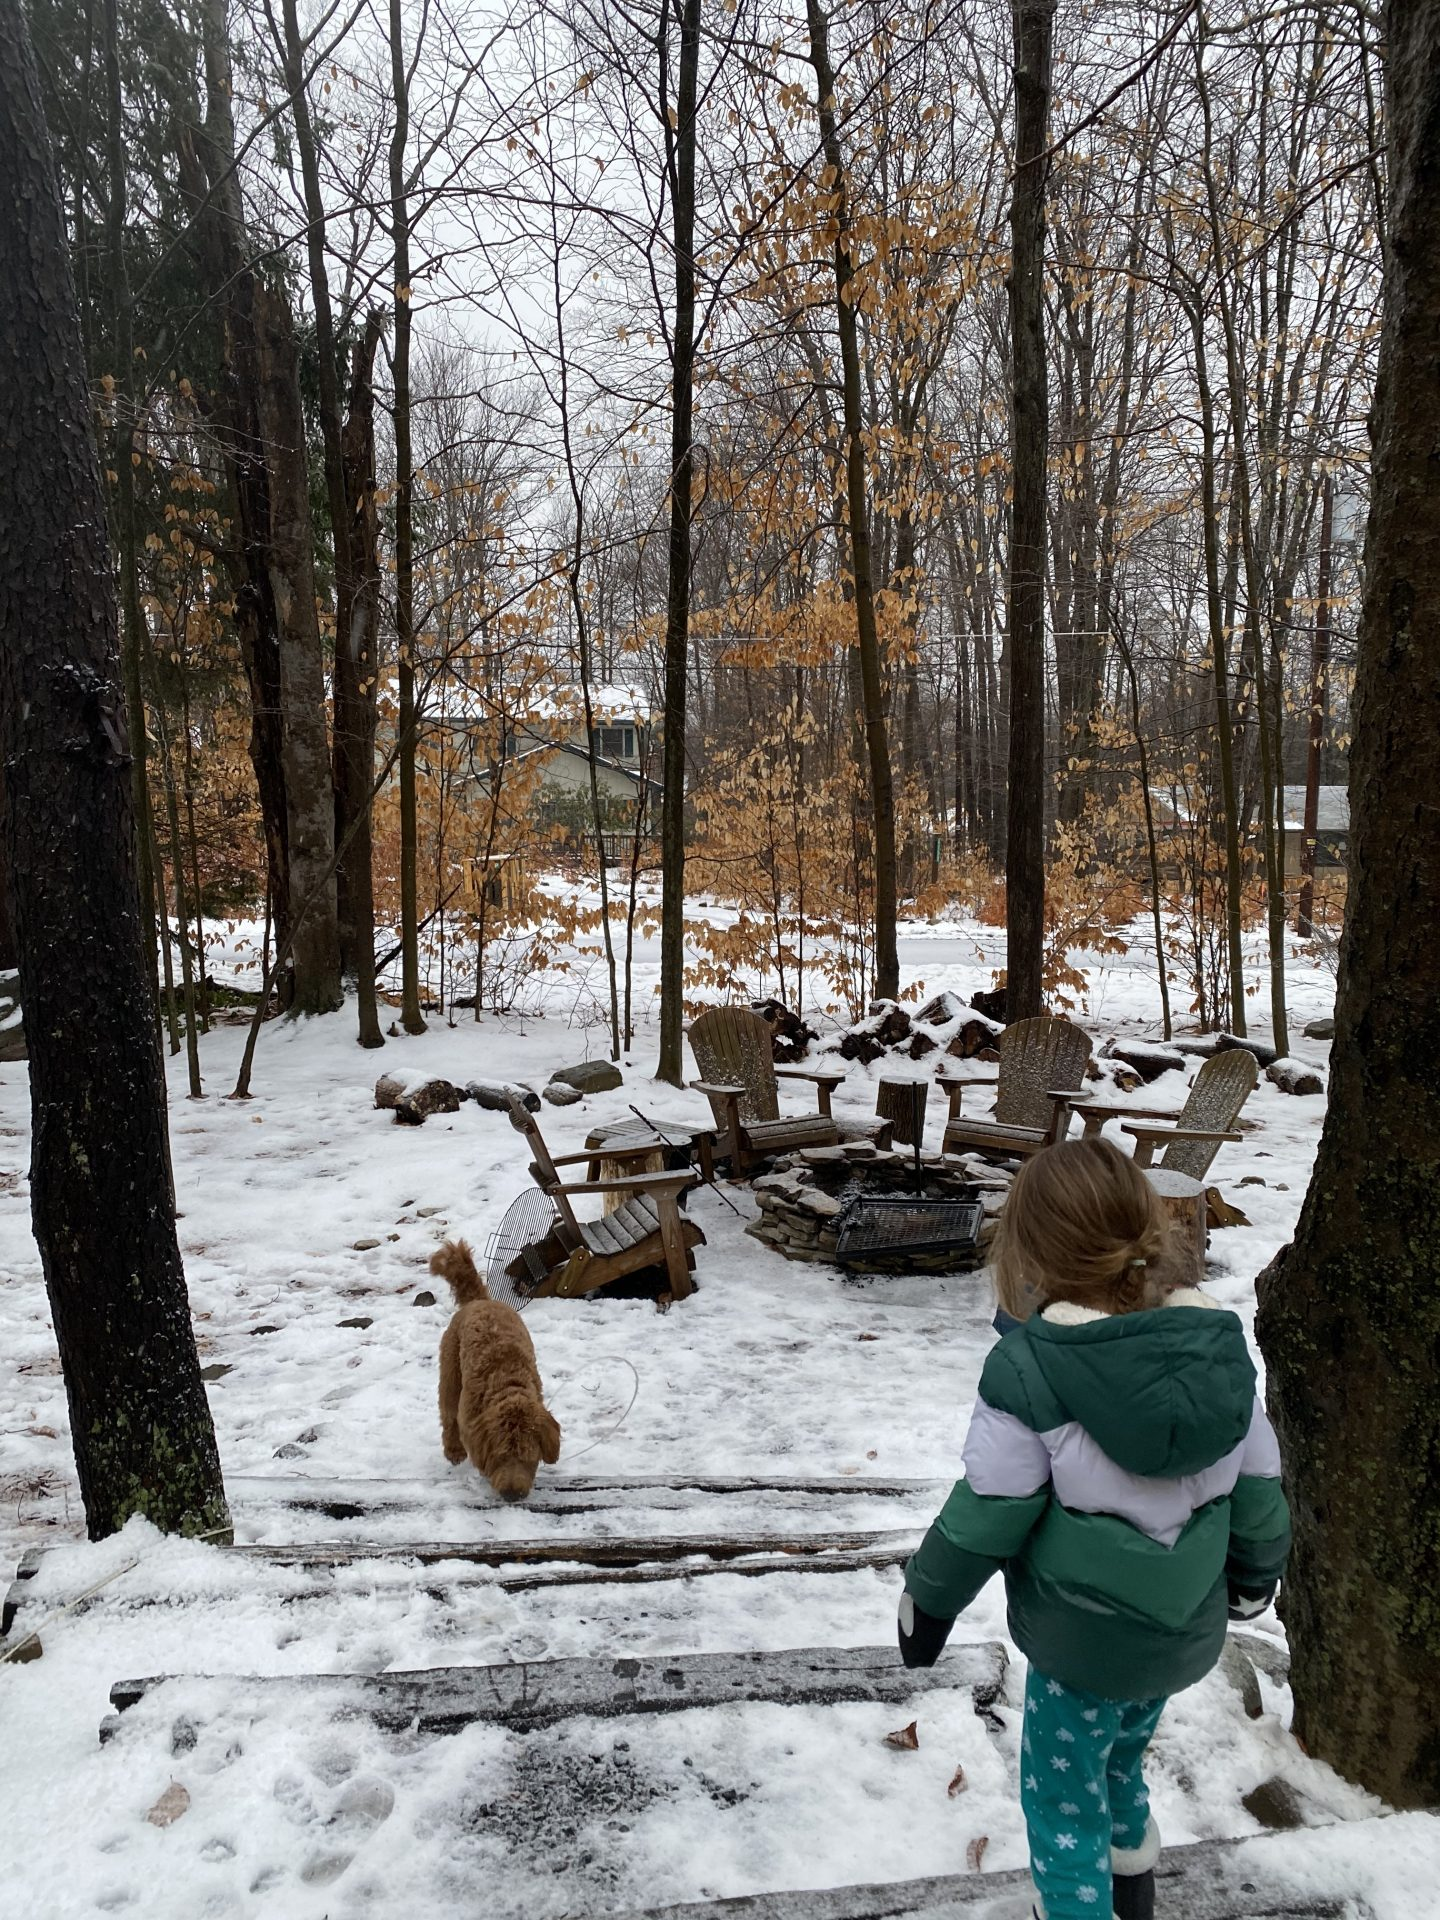 Lifestyle Blogger Chocolate and Lace shares her Airbnb Stay in the Pocono Mountains.